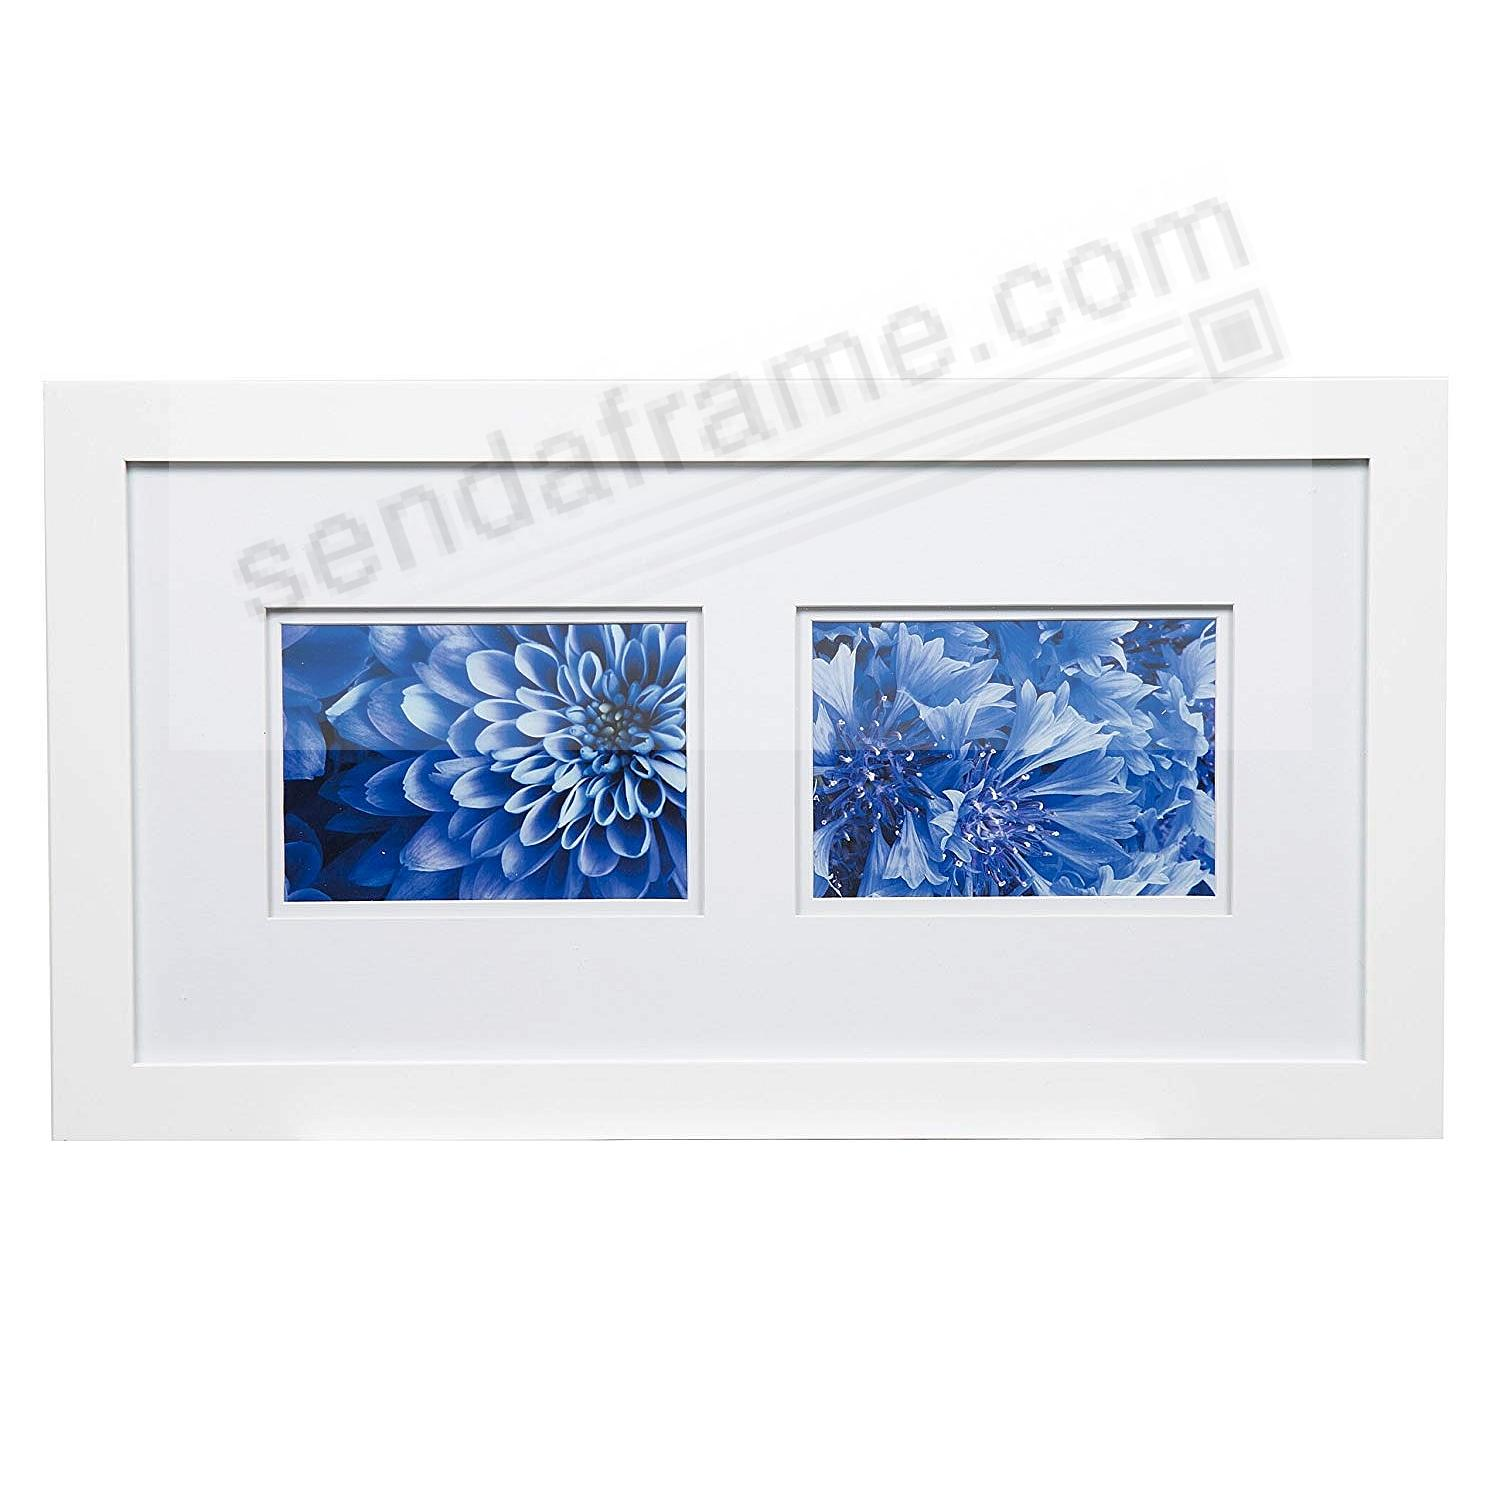 WHITE 20x10/5x7 double matted frame by Gallery Solutions™